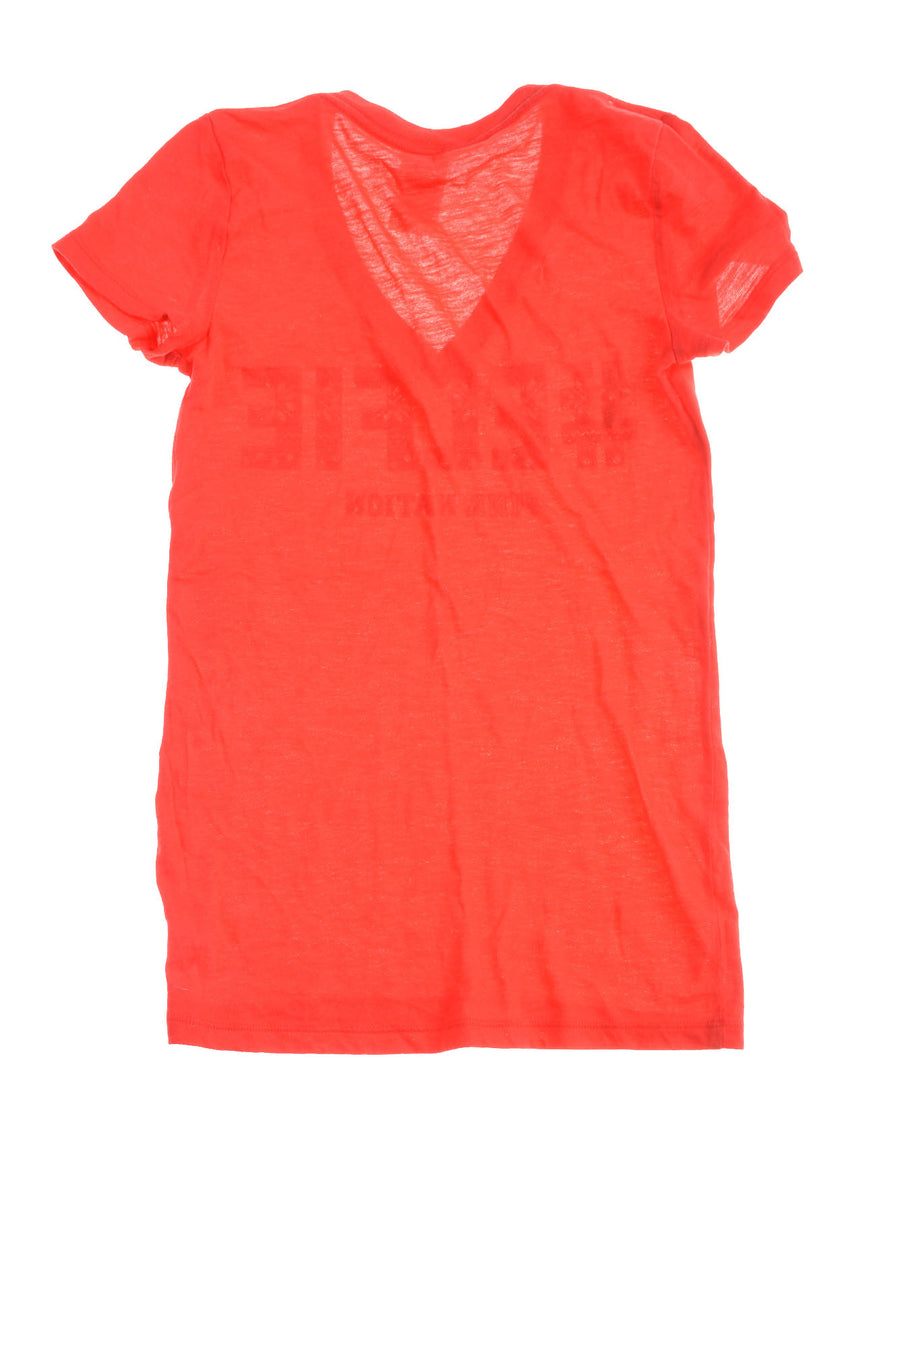 USED Pink By Victoria's Secret Women's Top X-Small Red